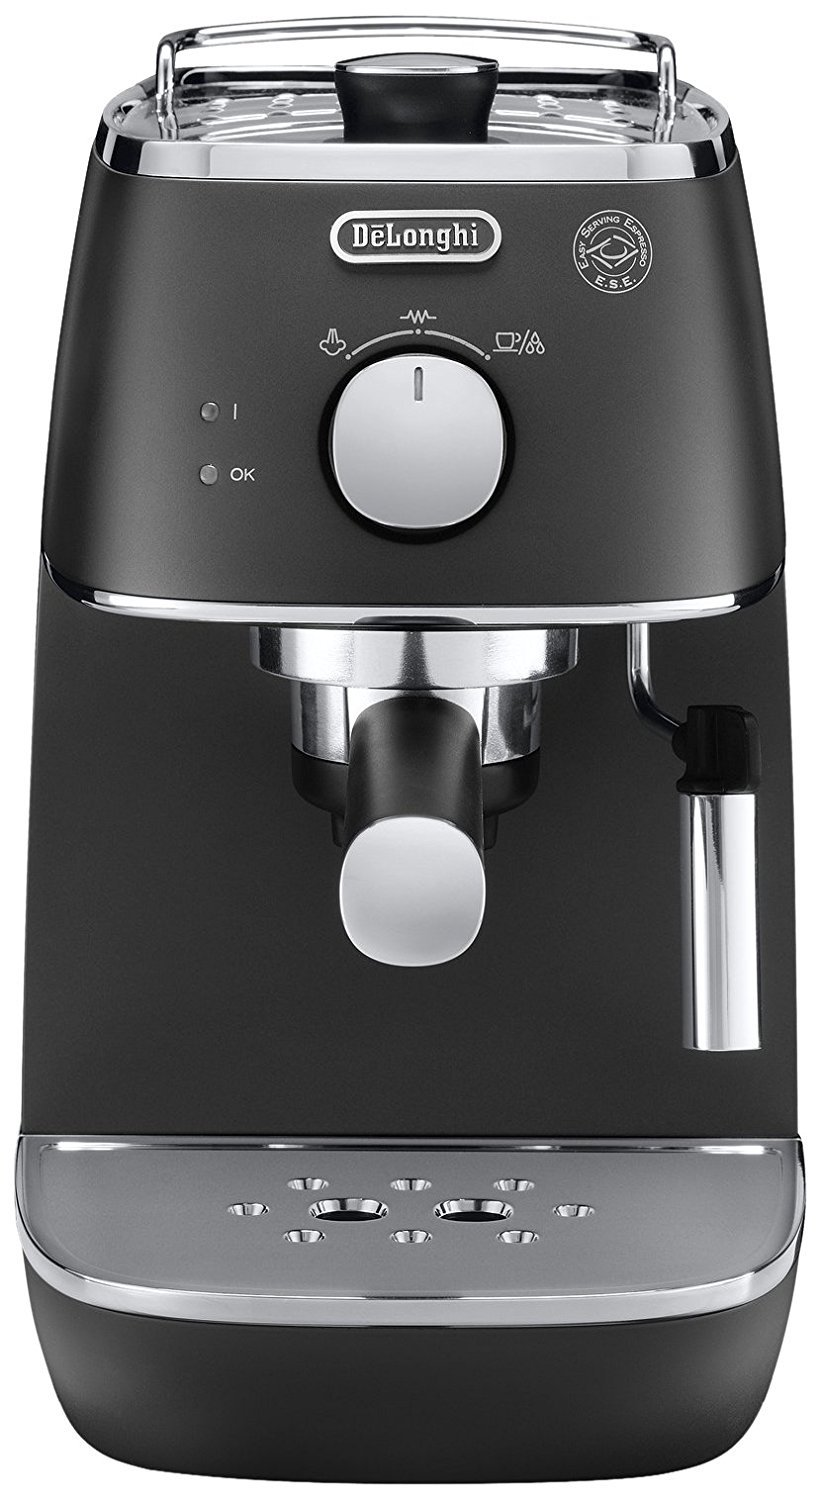 De'Longhi Distinta ECI341BK Traditional Pump Espresso Machine - Black [Energy Class A] (Certified Refurbished) De'Longhi